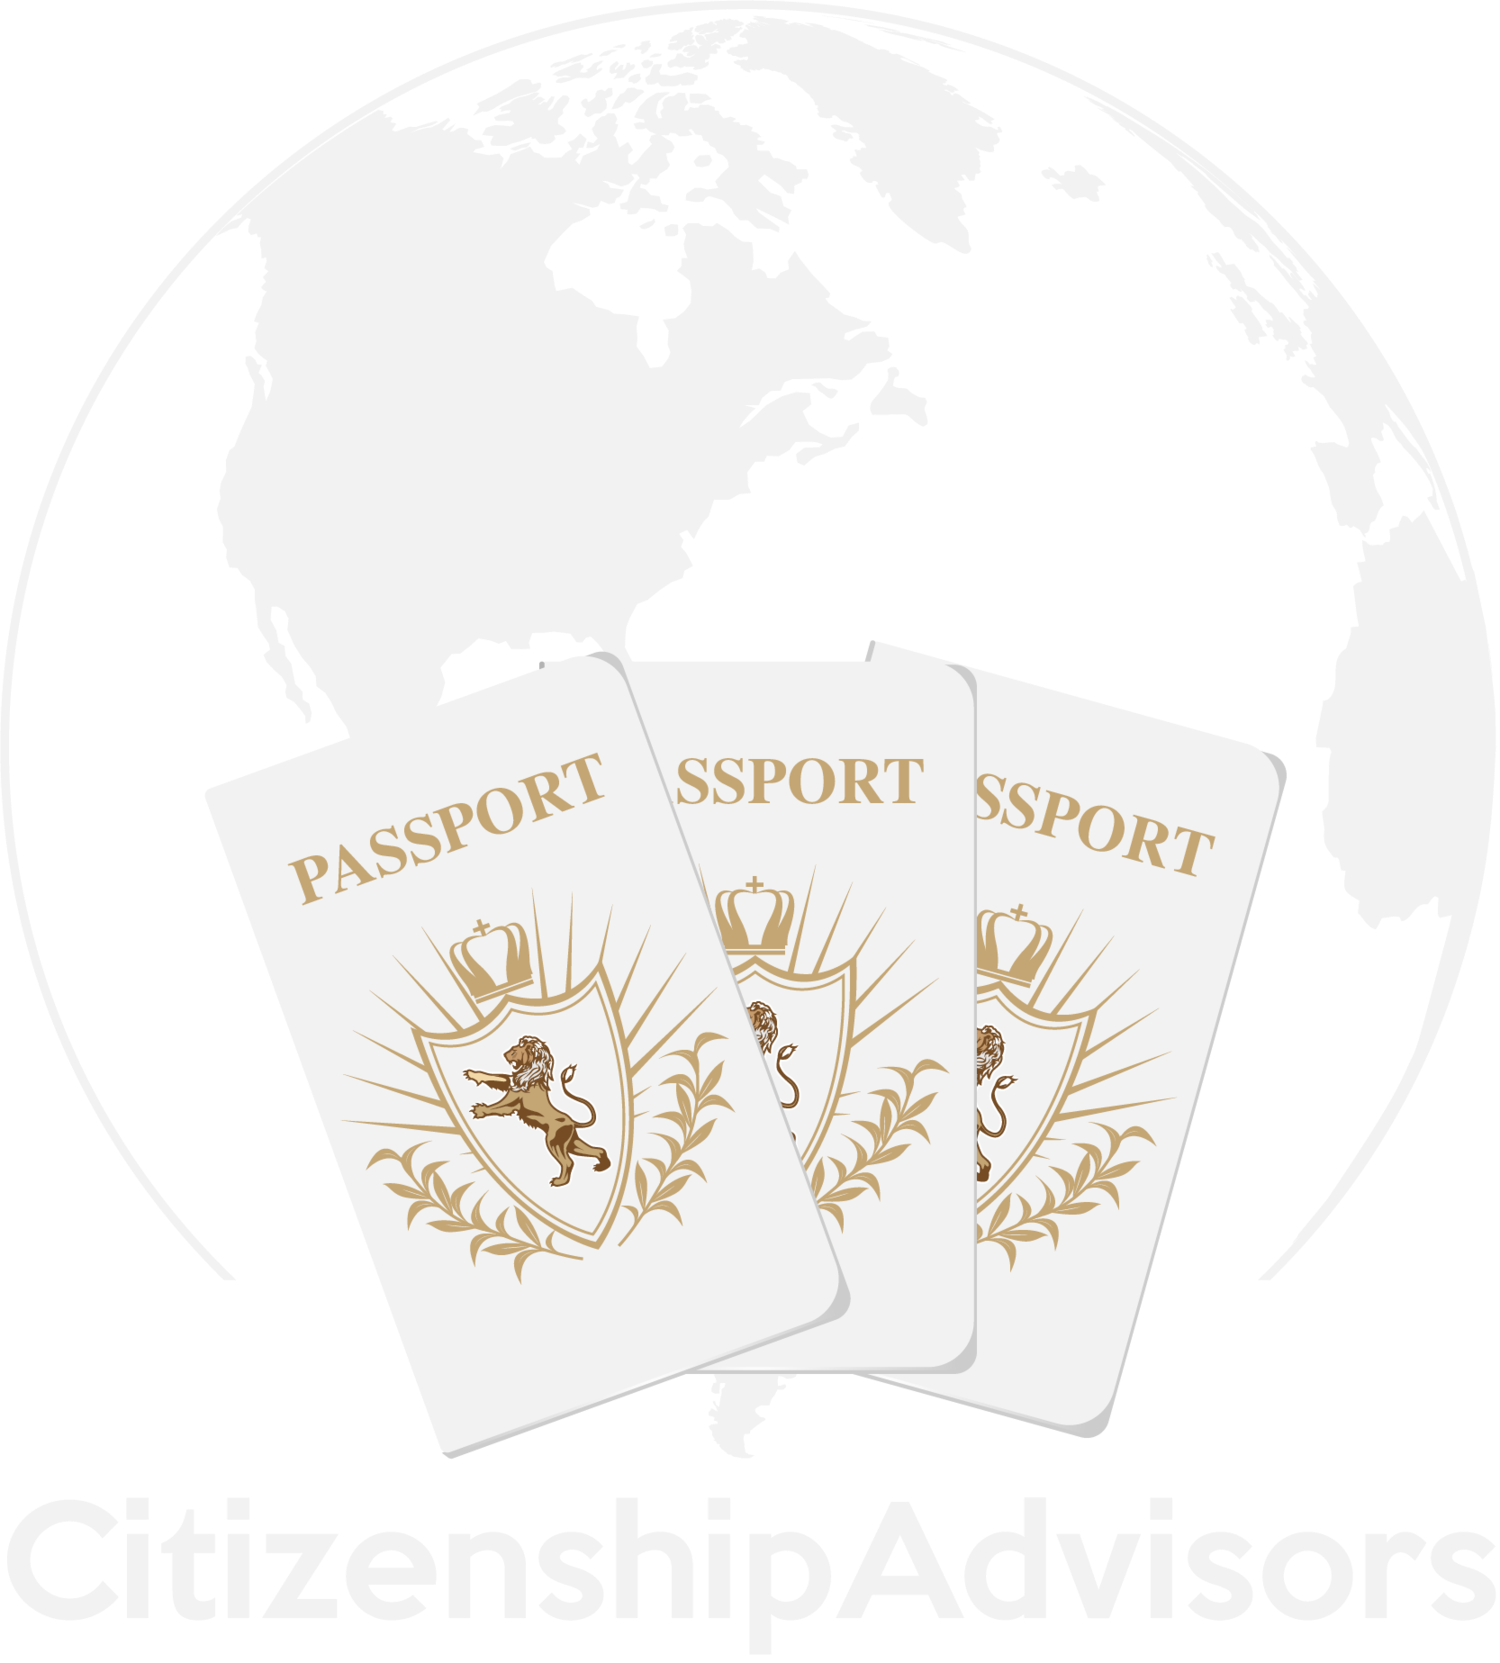 Citizenship Advisors